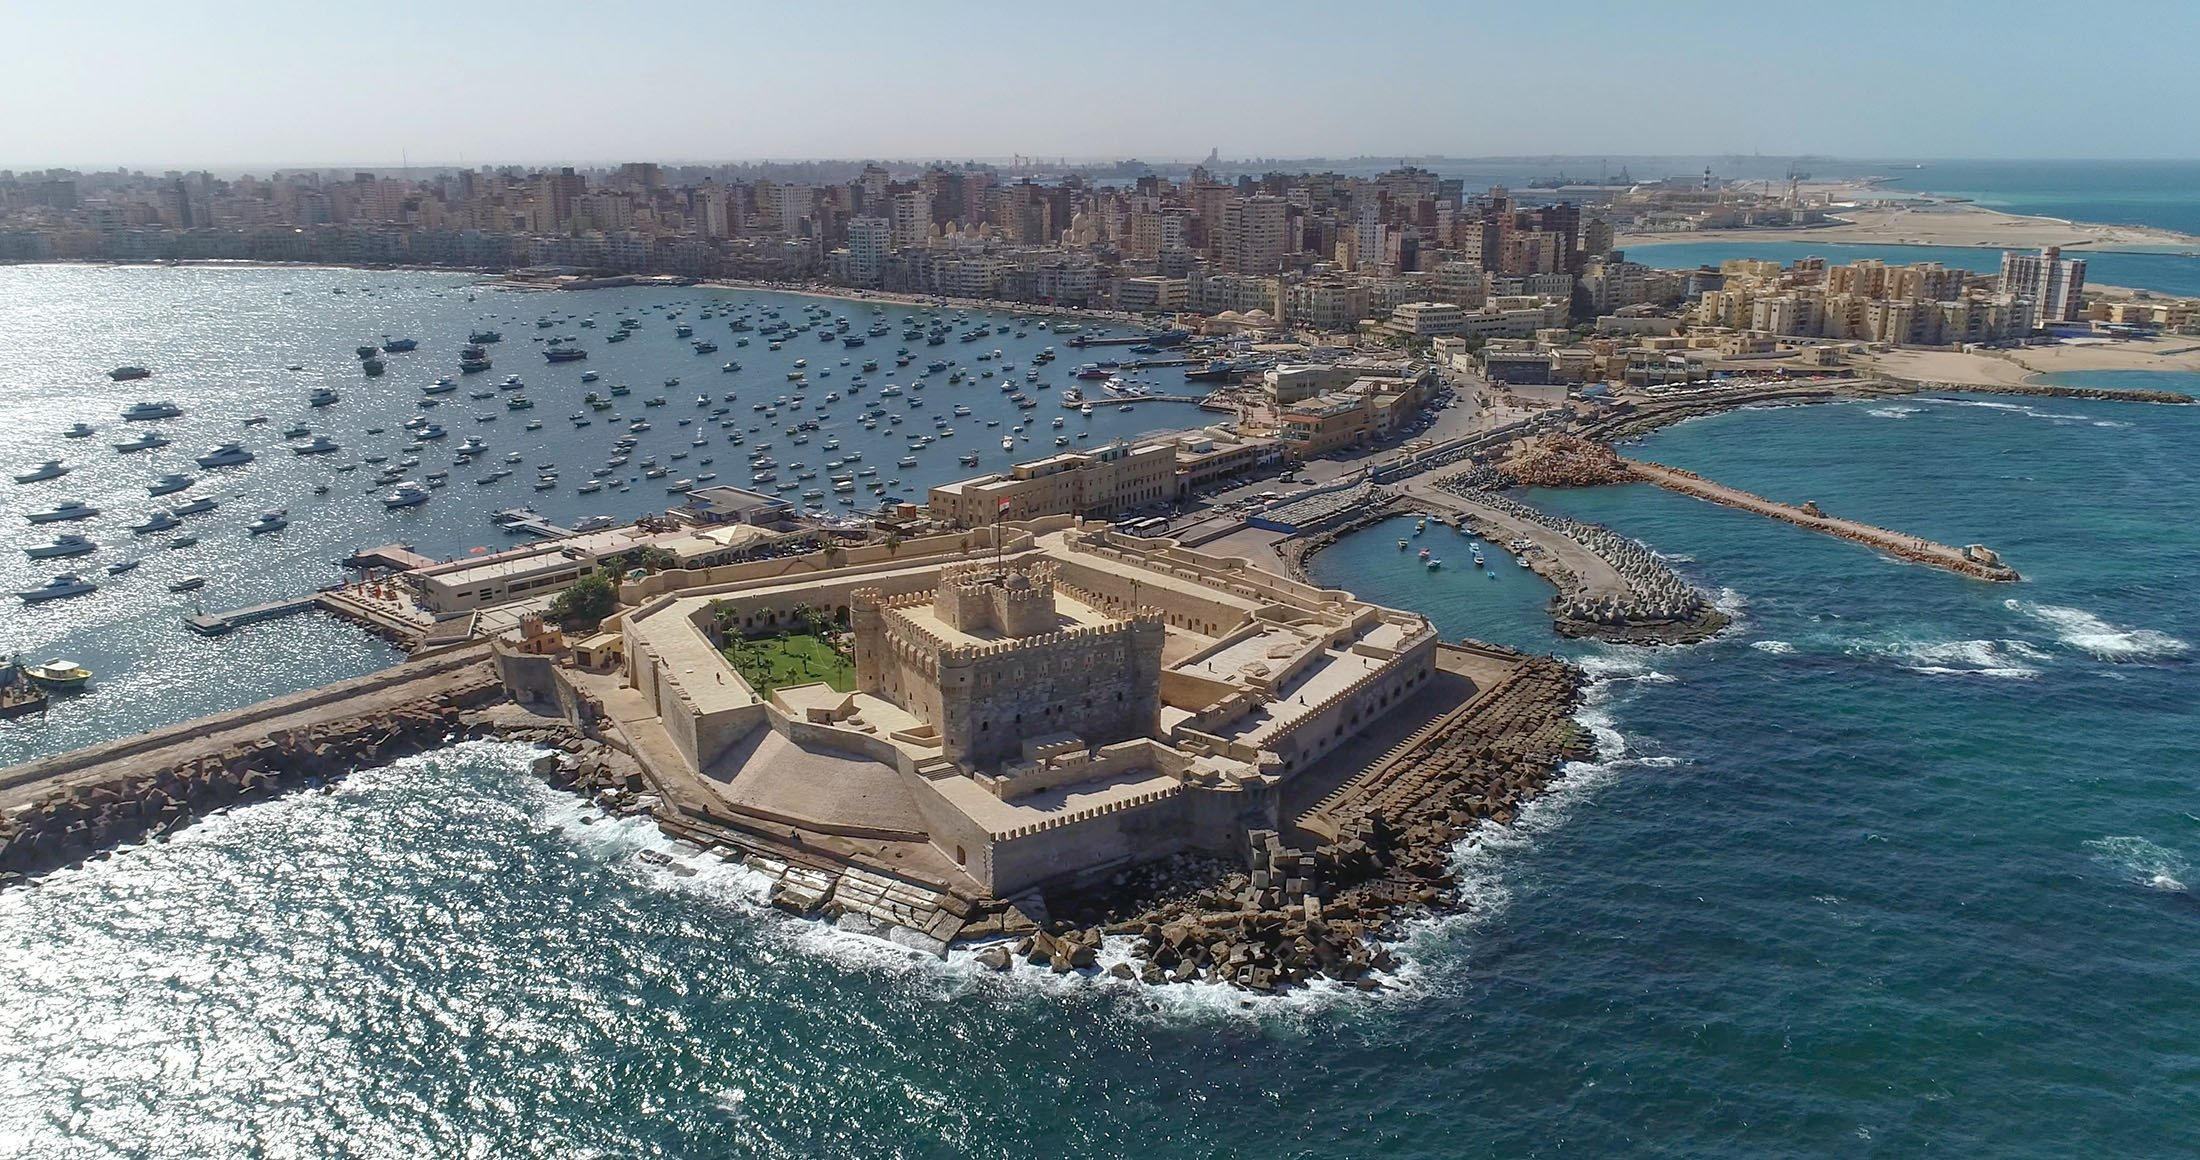 An aerial view shows the city of Alexandria with theCitadel of Qaitbay shining in the sun, Alexandria, Egypt. (Shutterstock Photo)